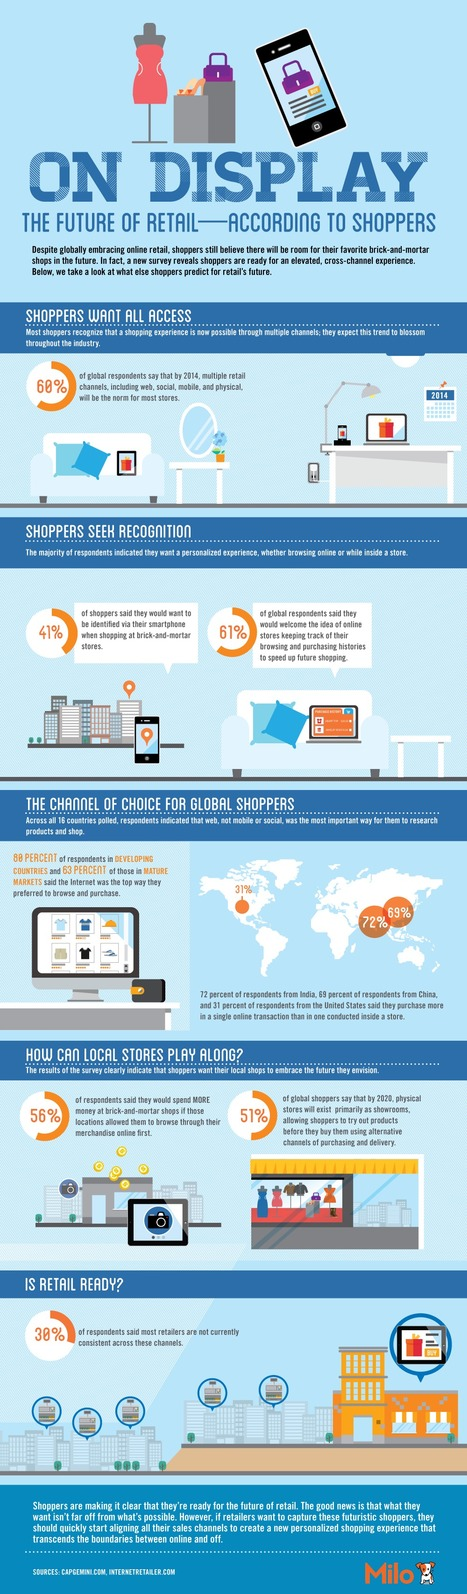 On Display: The Future of Retail—According to Shoppers (infographic) | telescope | Scoop.it